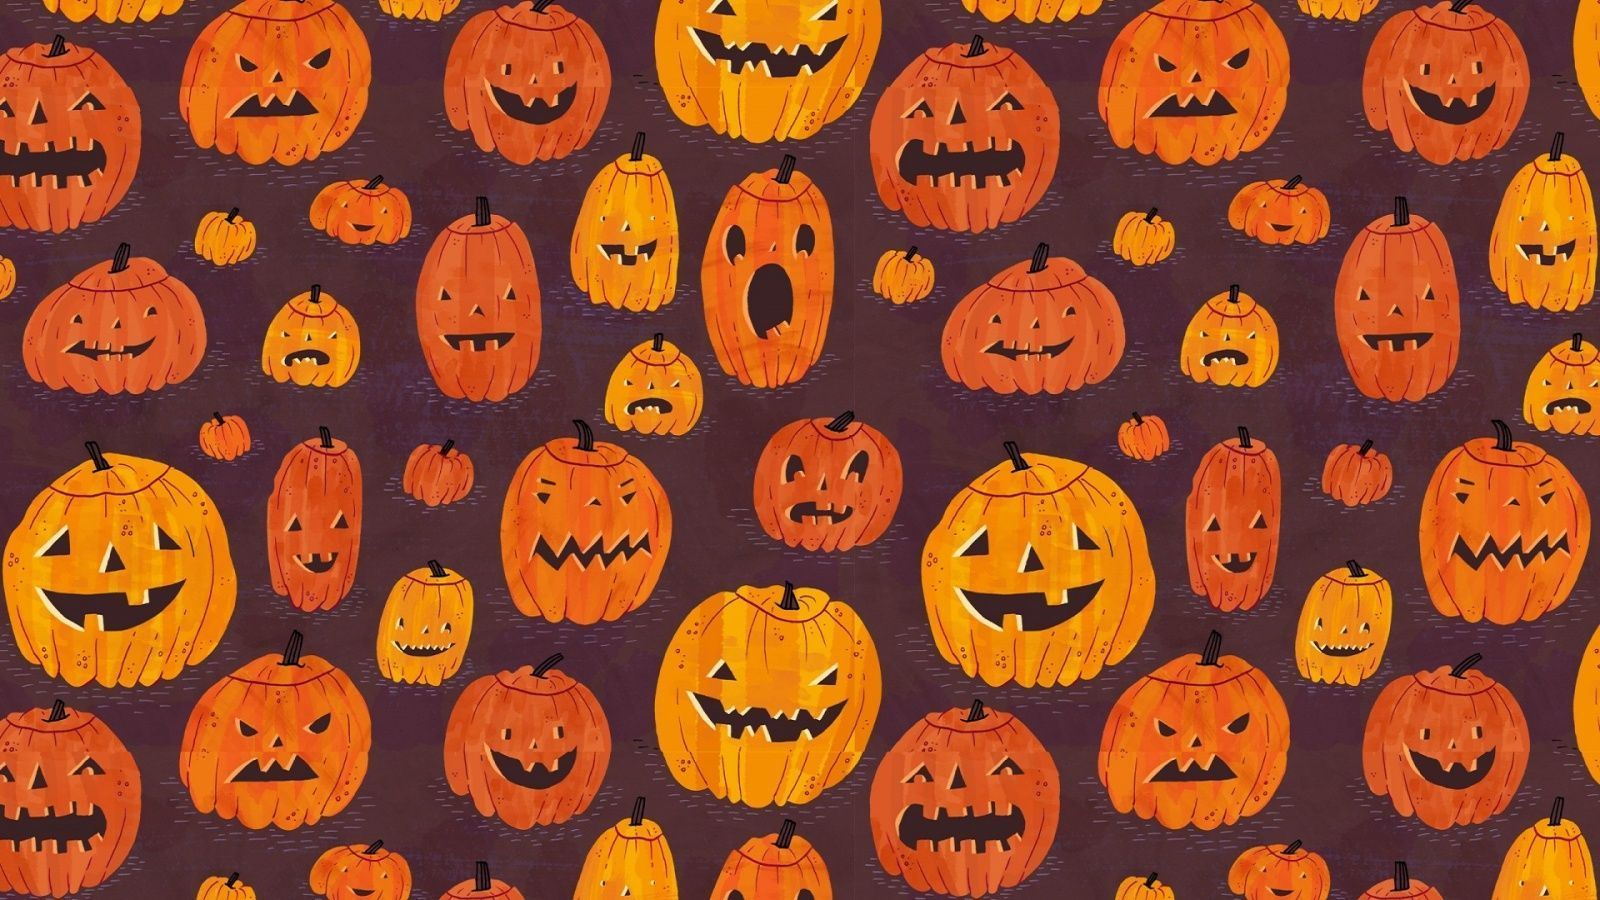 Tumblr Halloween Desktop Wallpapers Top Free Tumblr Tumblr Halloween Desktop Wallpa Halloween Desktop Wallpaper Pumpkin Wallpaper Halloween Background Tumblr